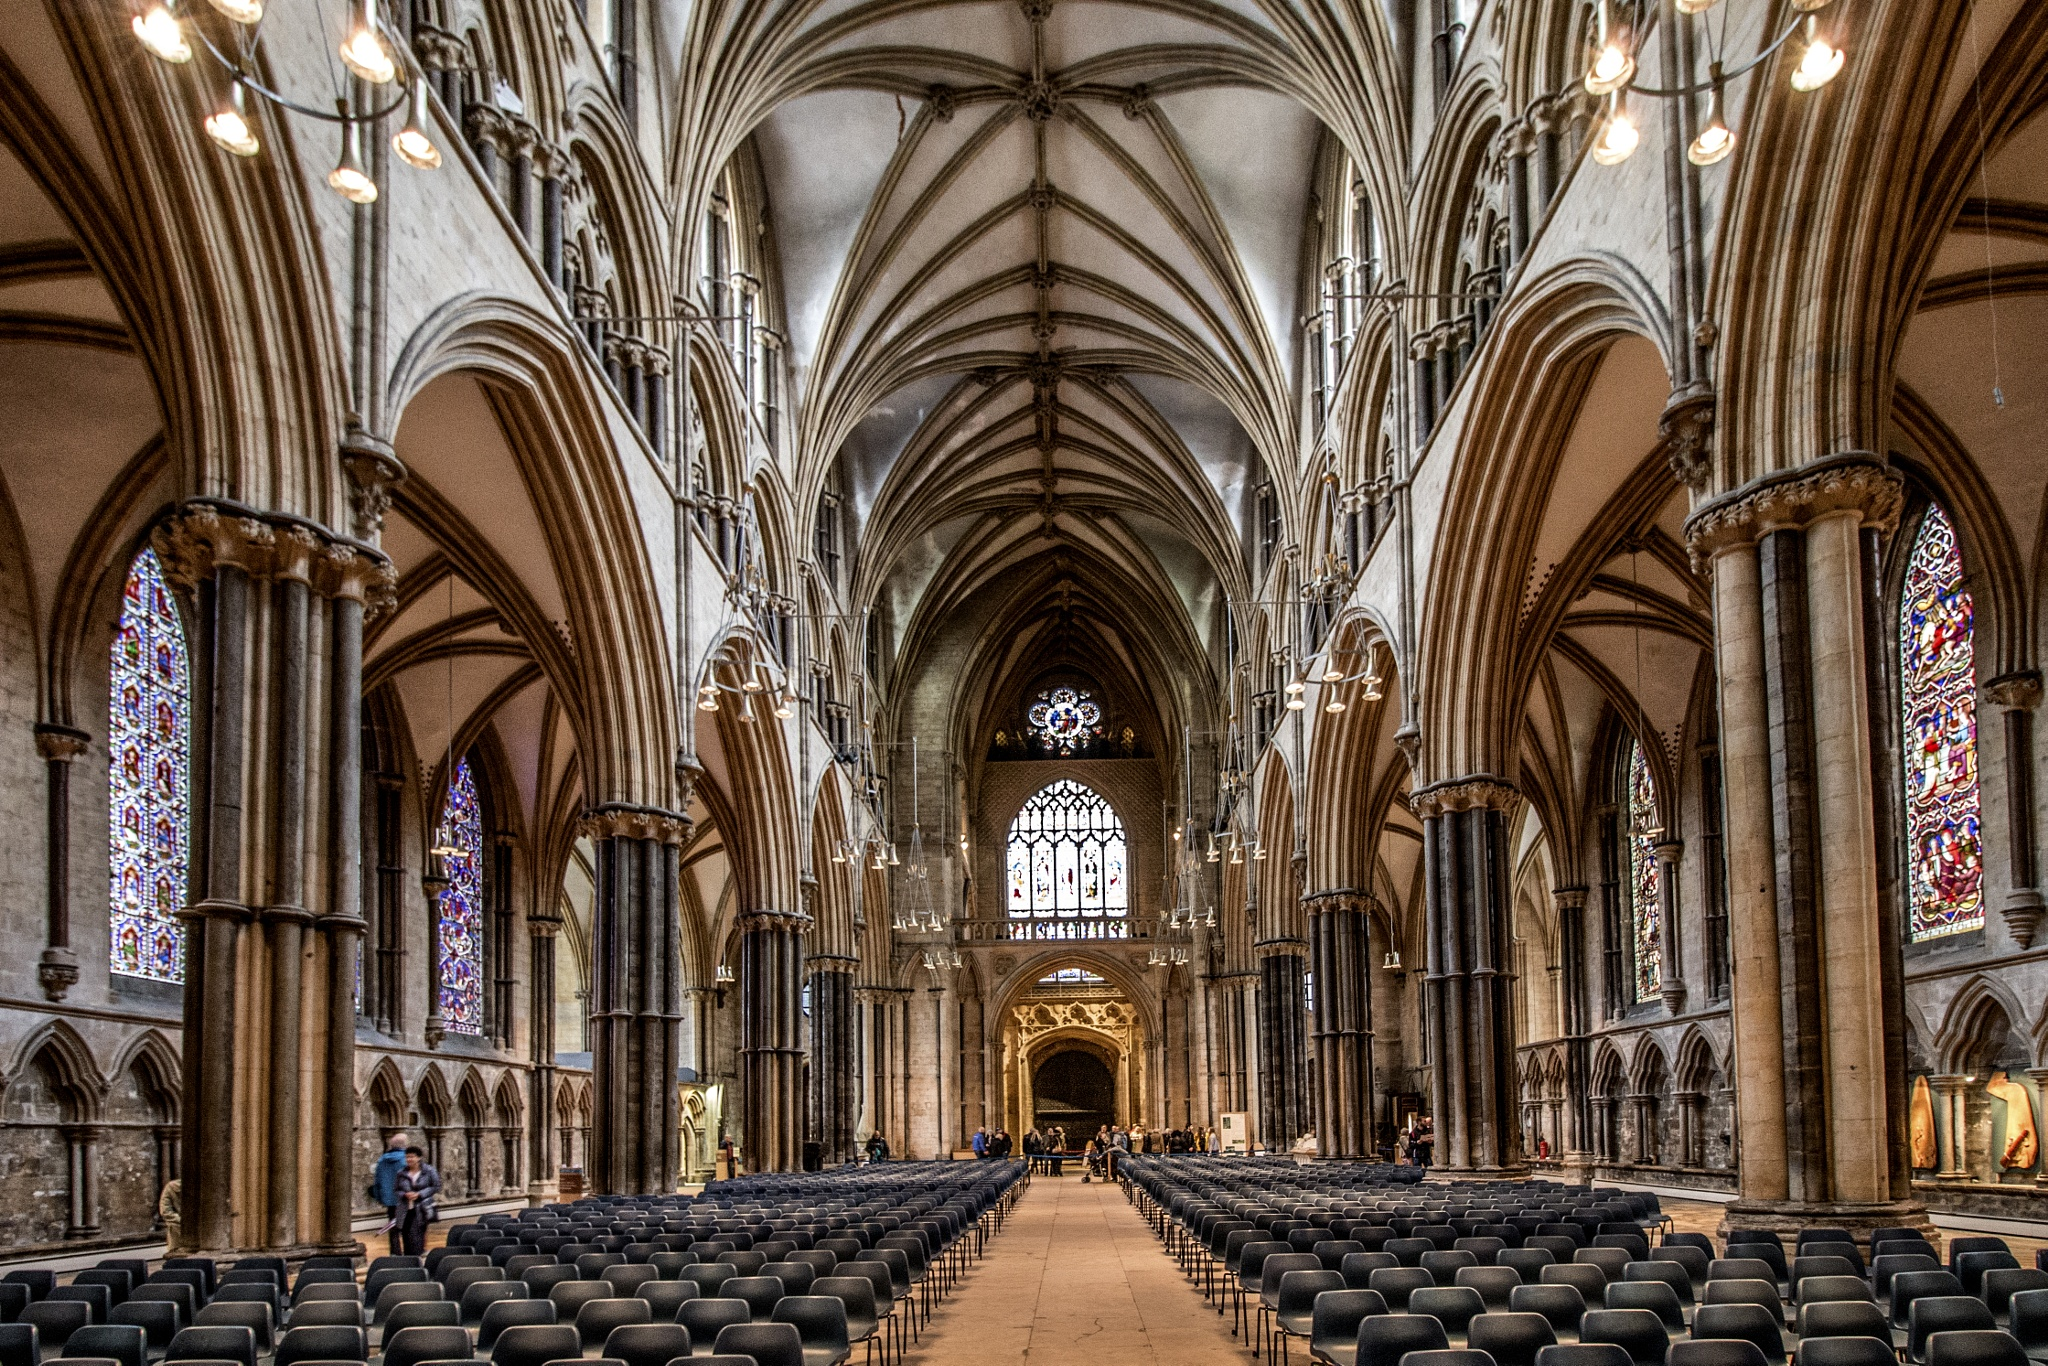 The Nave by idstretch